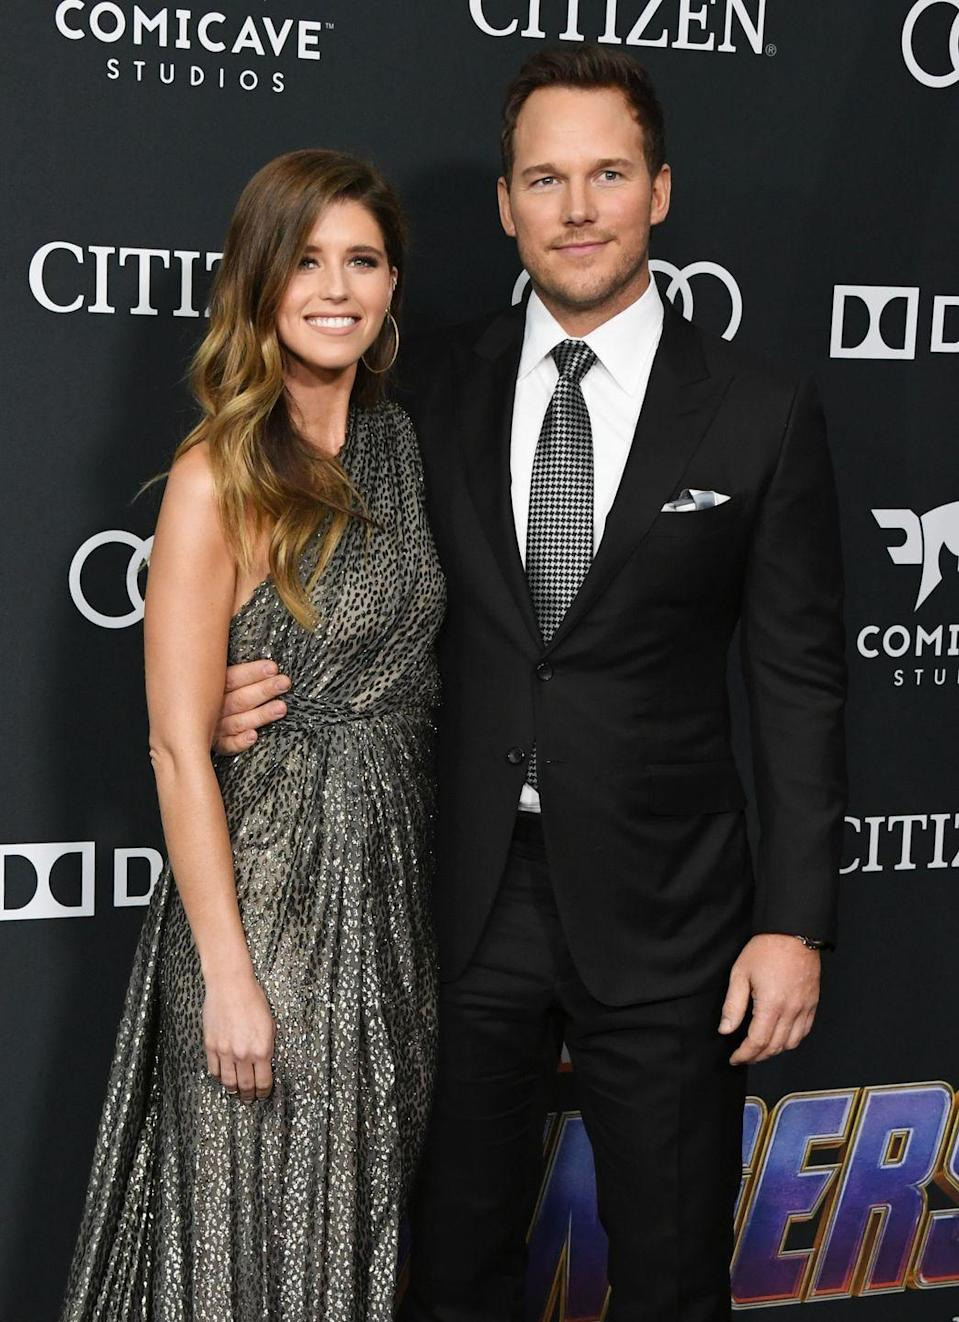 <p><strong>Age gap: </strong>10 years</p><p>Chris Pratt and Katherine Schwarzenegger announced their engagement in January 2019, after keeping a low profile at the beginning of their relationship. The couple were married in June in a private ceremony. Chris divorced actress Anna Faris in 2018, but the two still coparent their son Jack.</p>